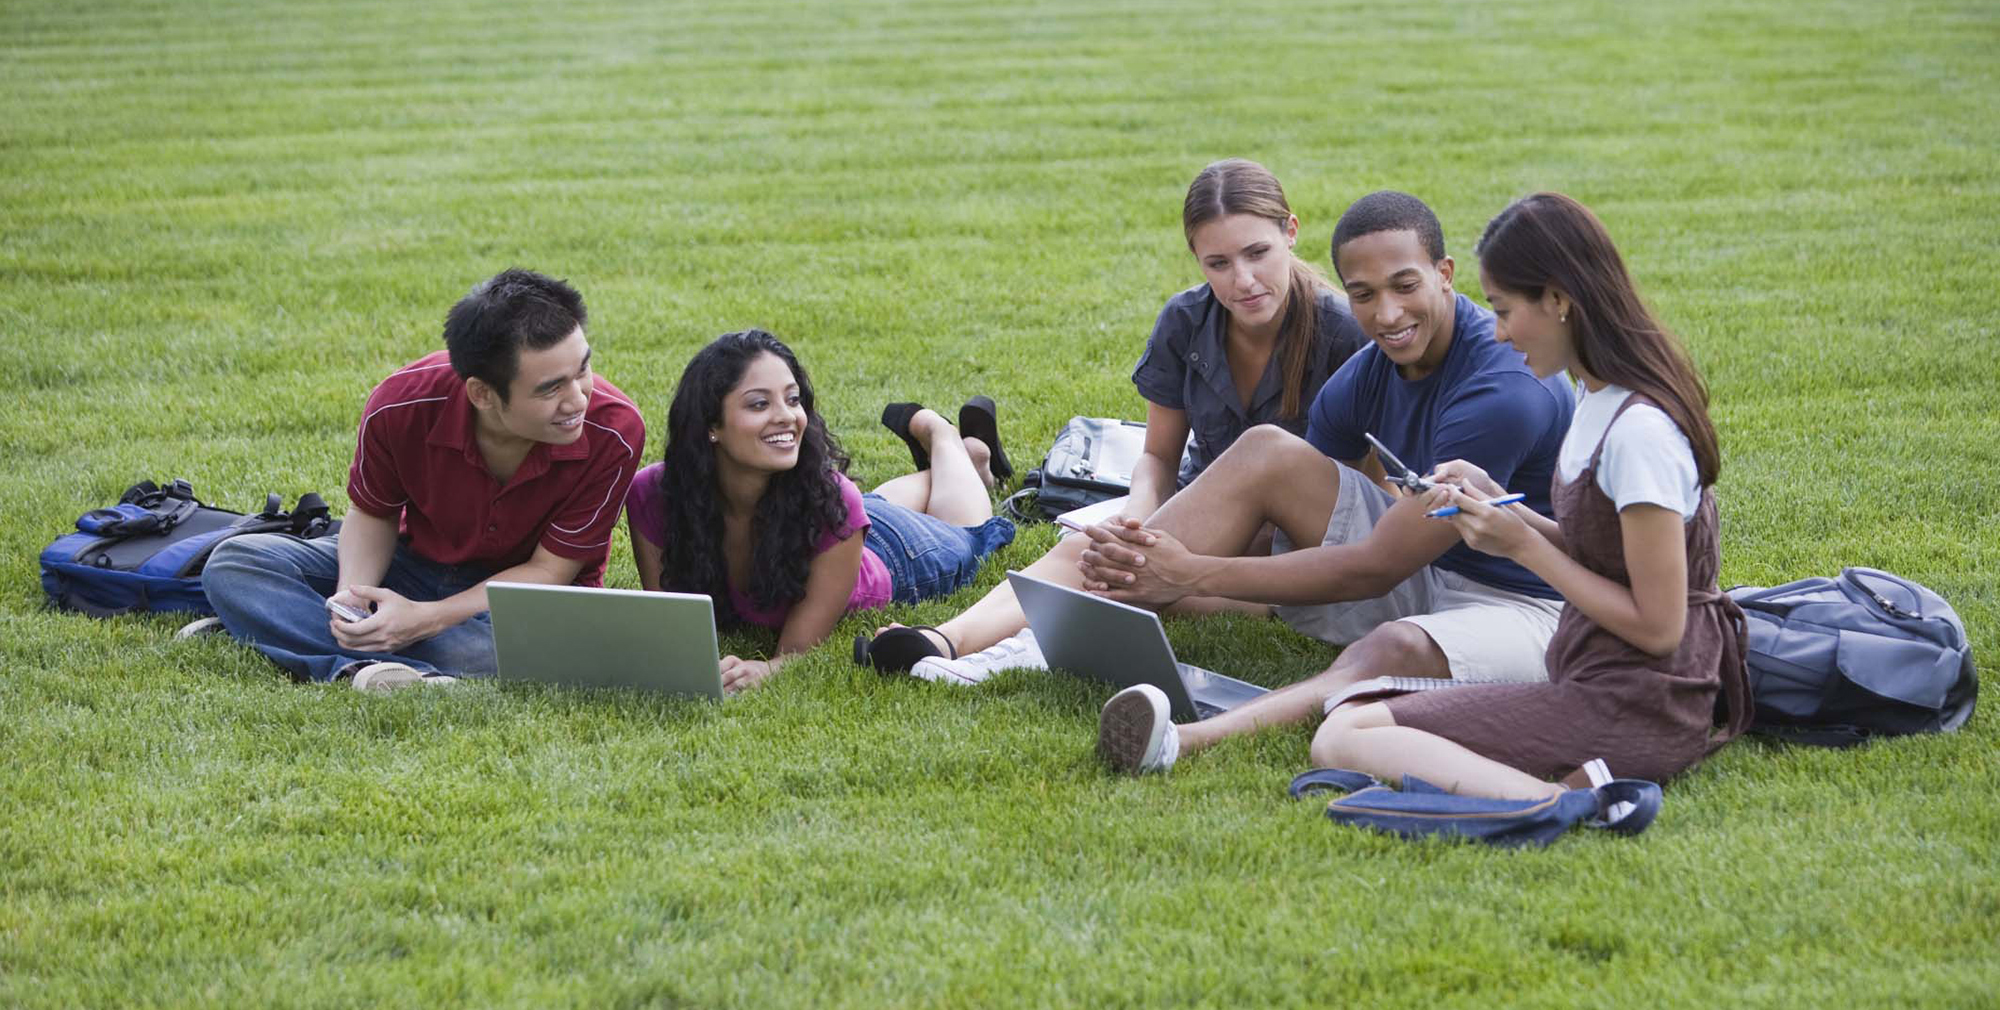 Five students studying outside on the lawn